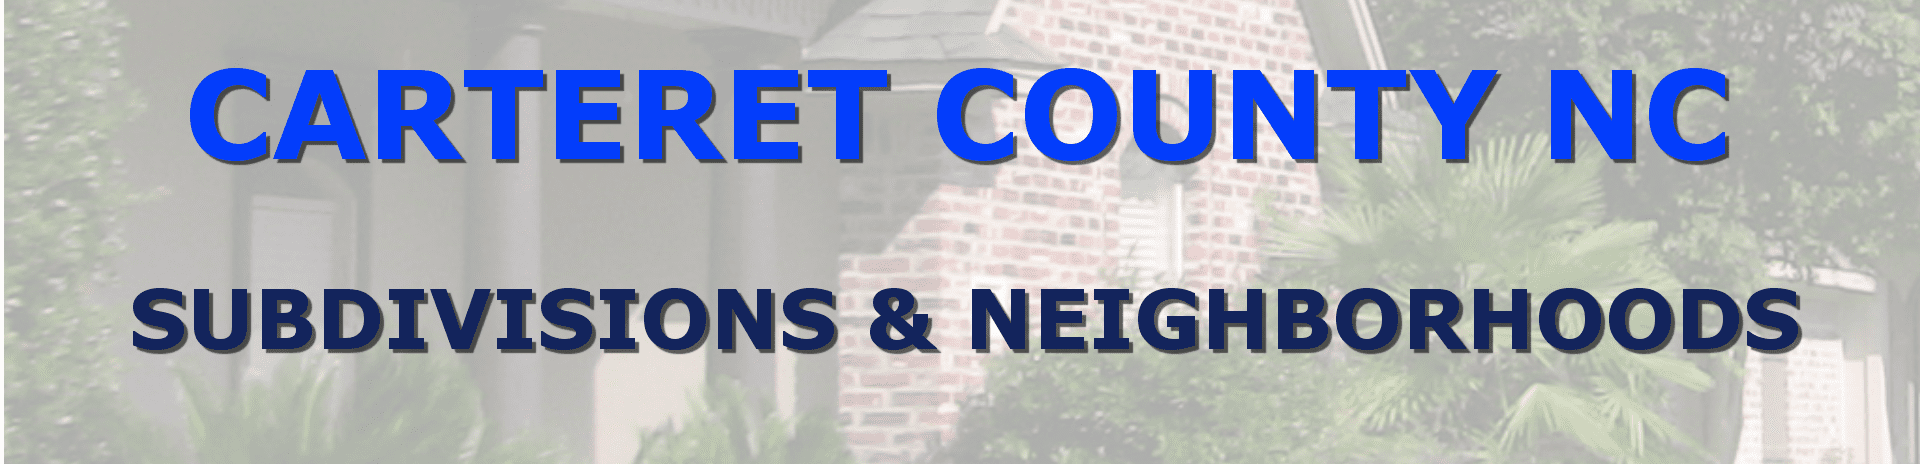 subdivision Carteret County NC neighborhoods information